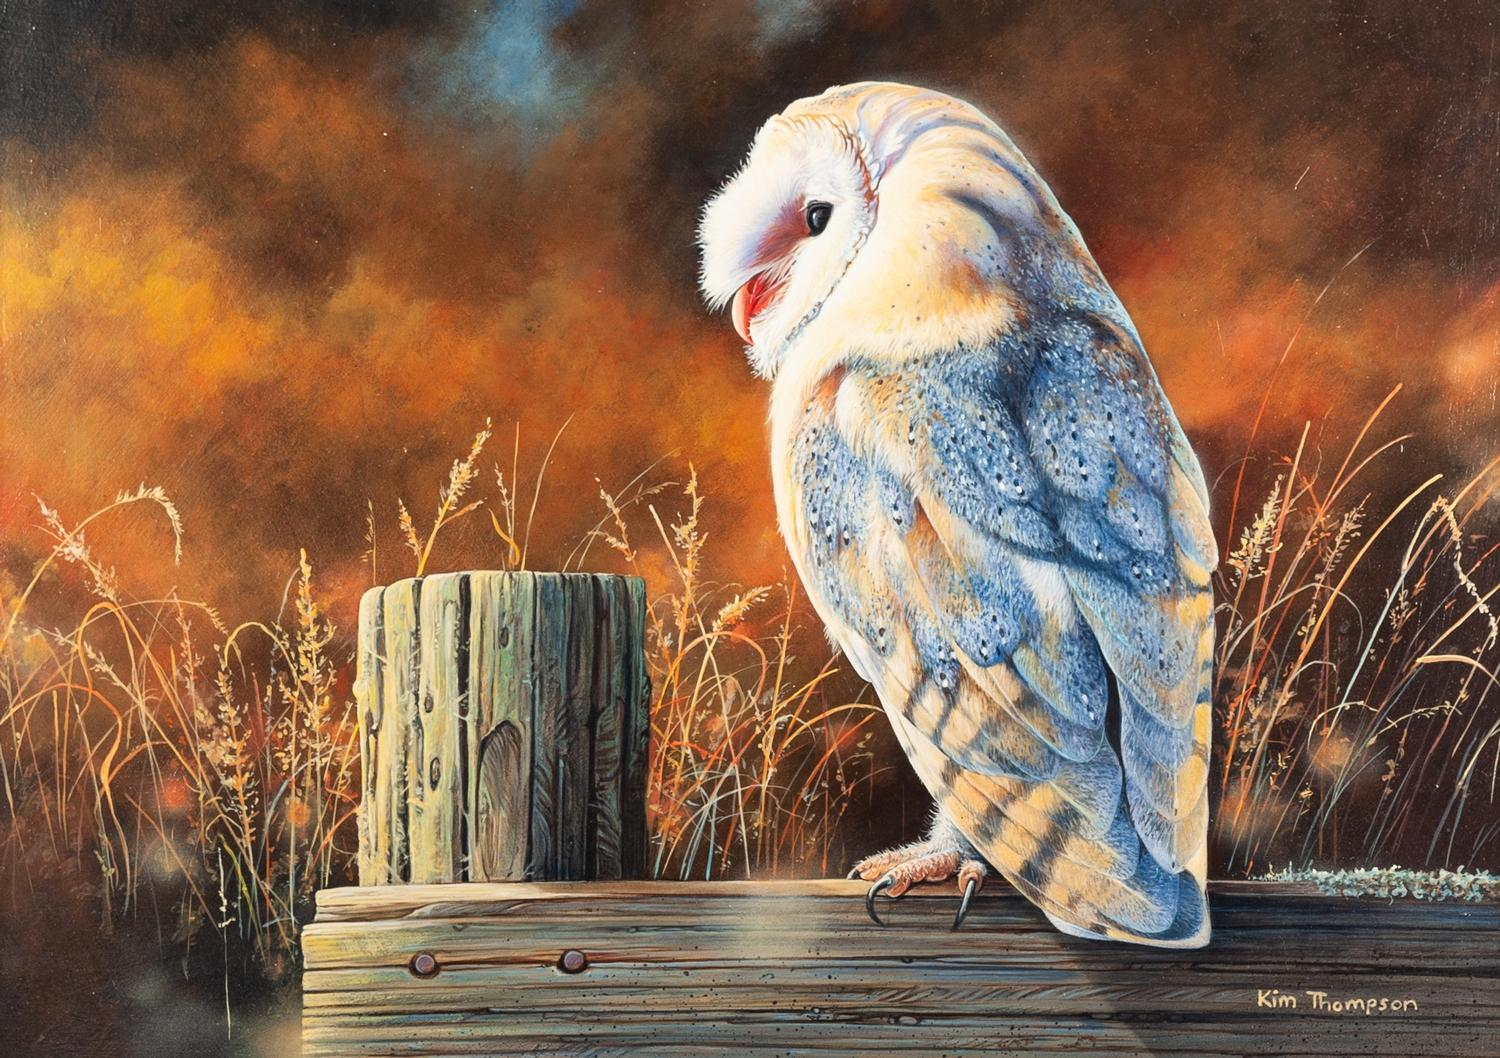 """Lot 281 - KIM THOMPSON (1963) ACRYLIC ON BOARD Owl on a fence Signed lower right 11"""" x 15 3/4"""" (28 x 40cm)"""